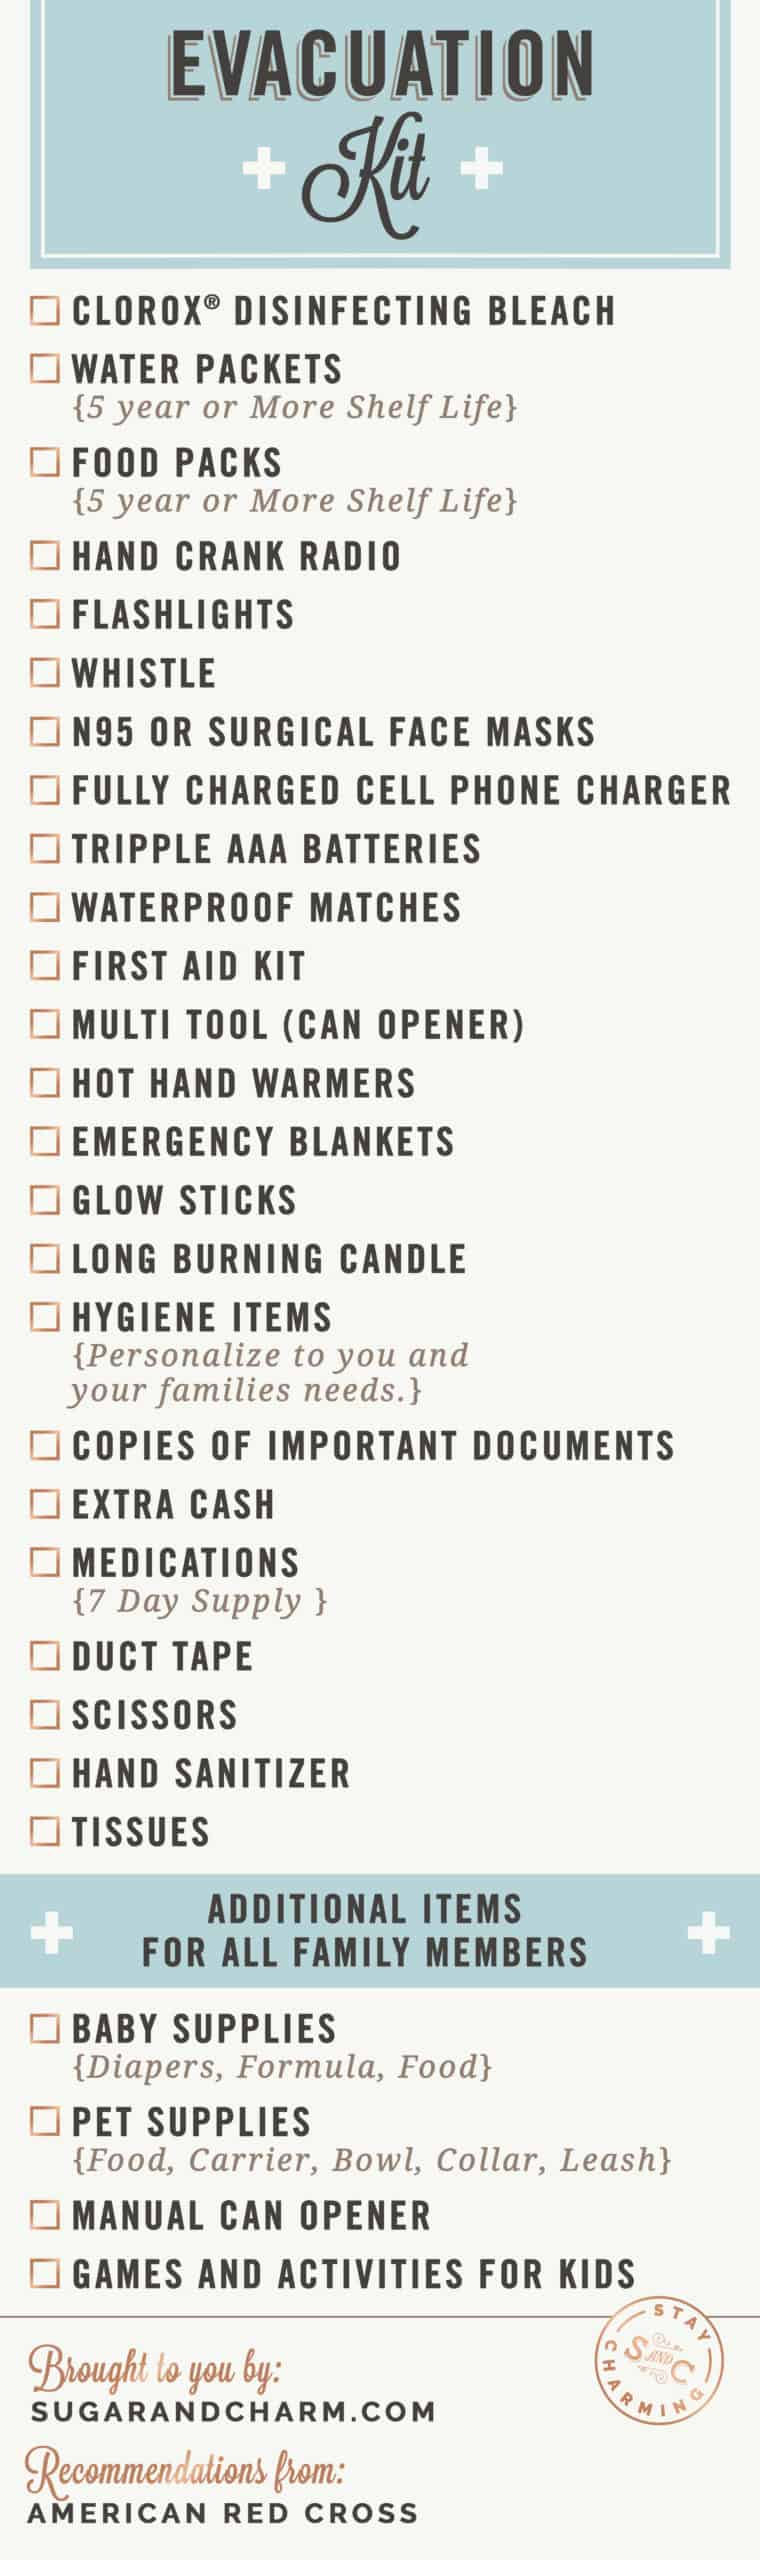 List of items for an emergency kit